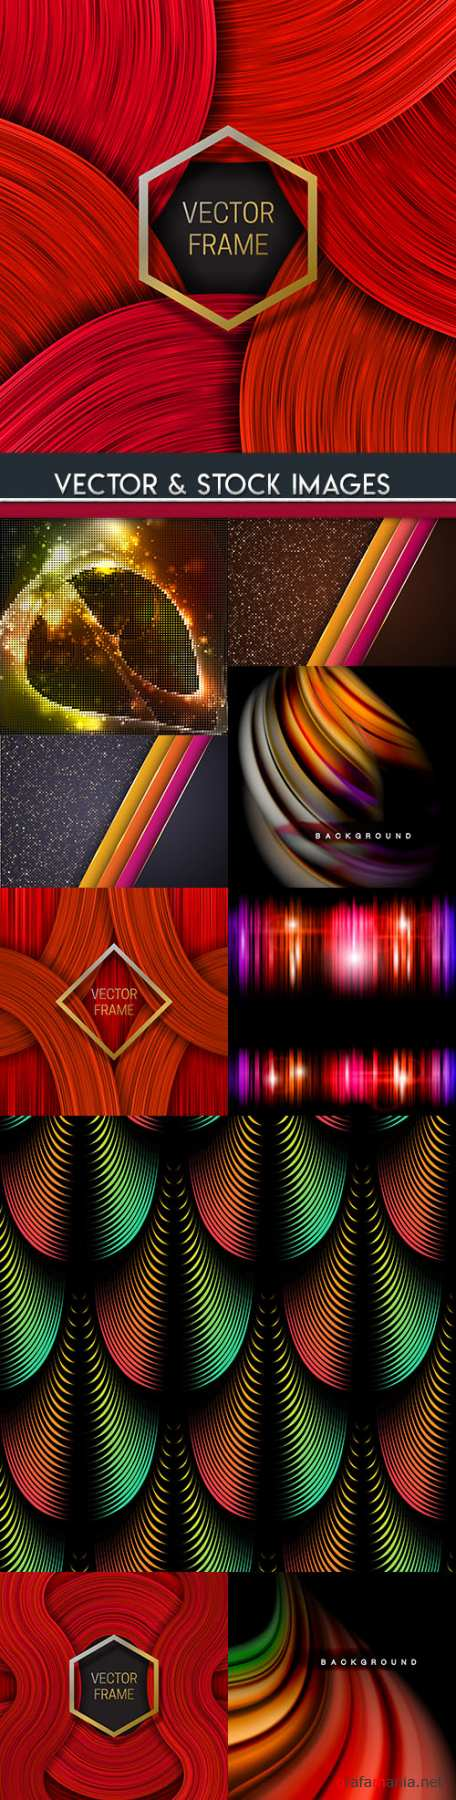 Abstract geometry background gradient design 30